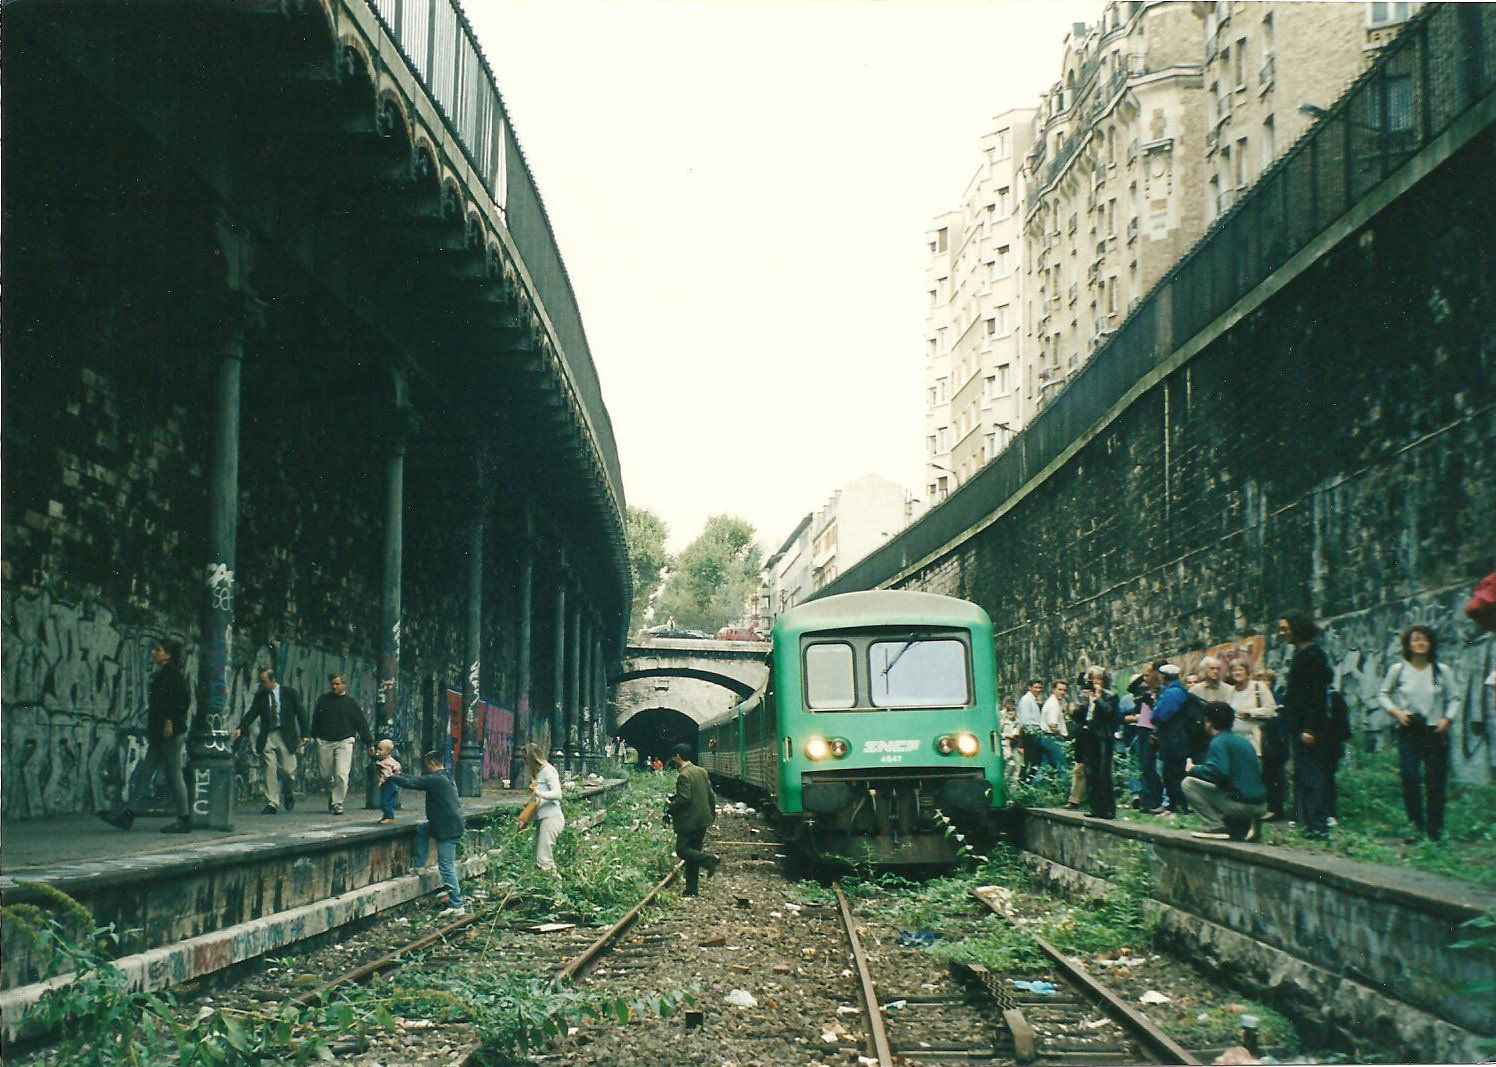 Jacques gauthier association petite ceinture grand paris